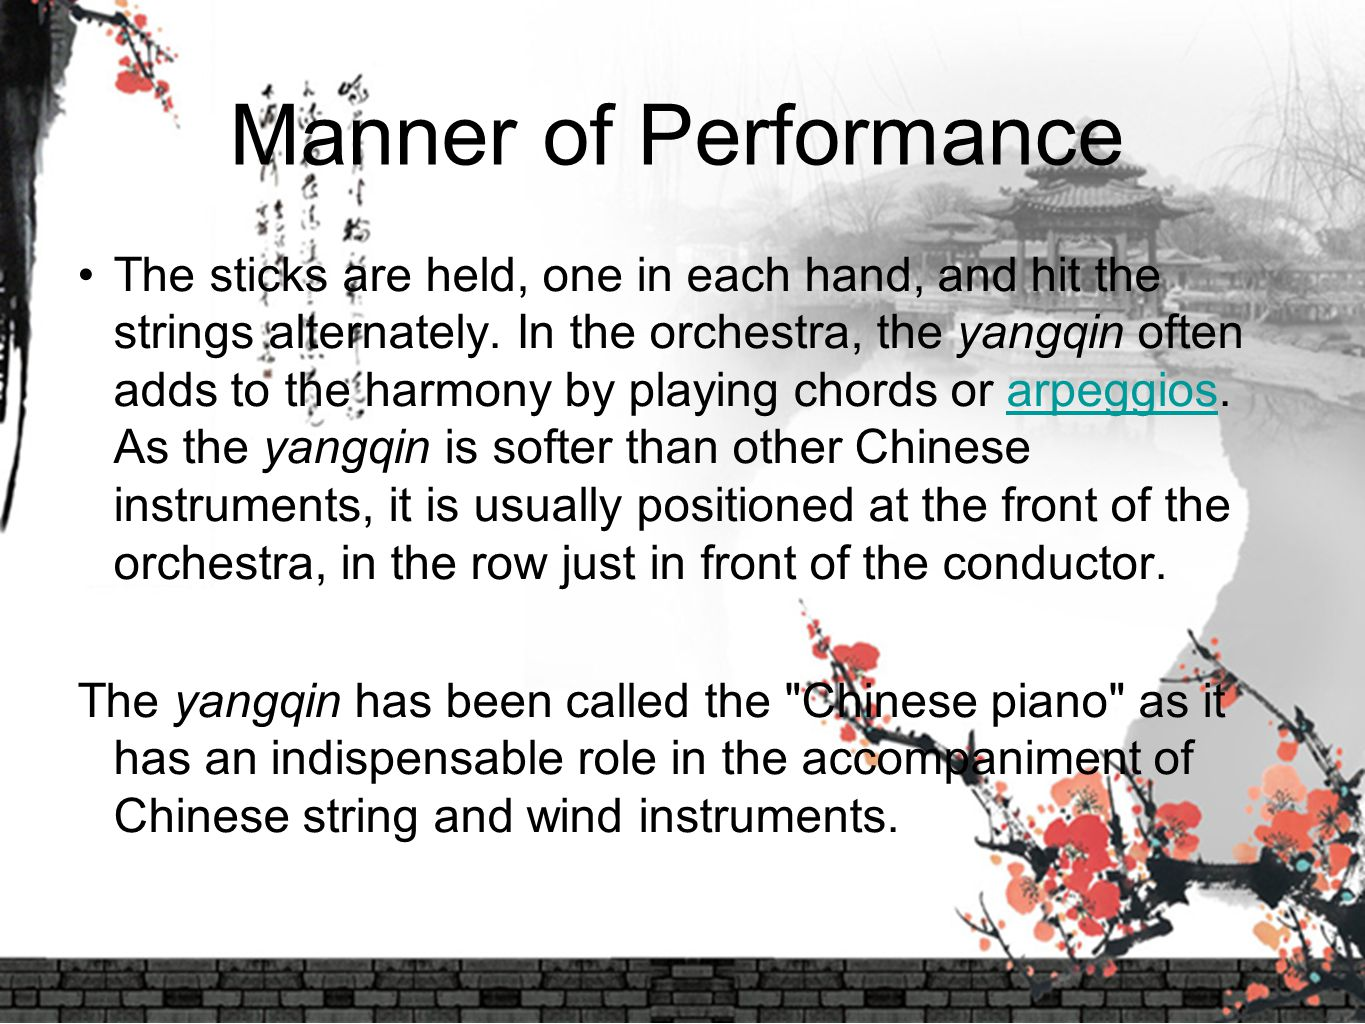 Manner of Performance